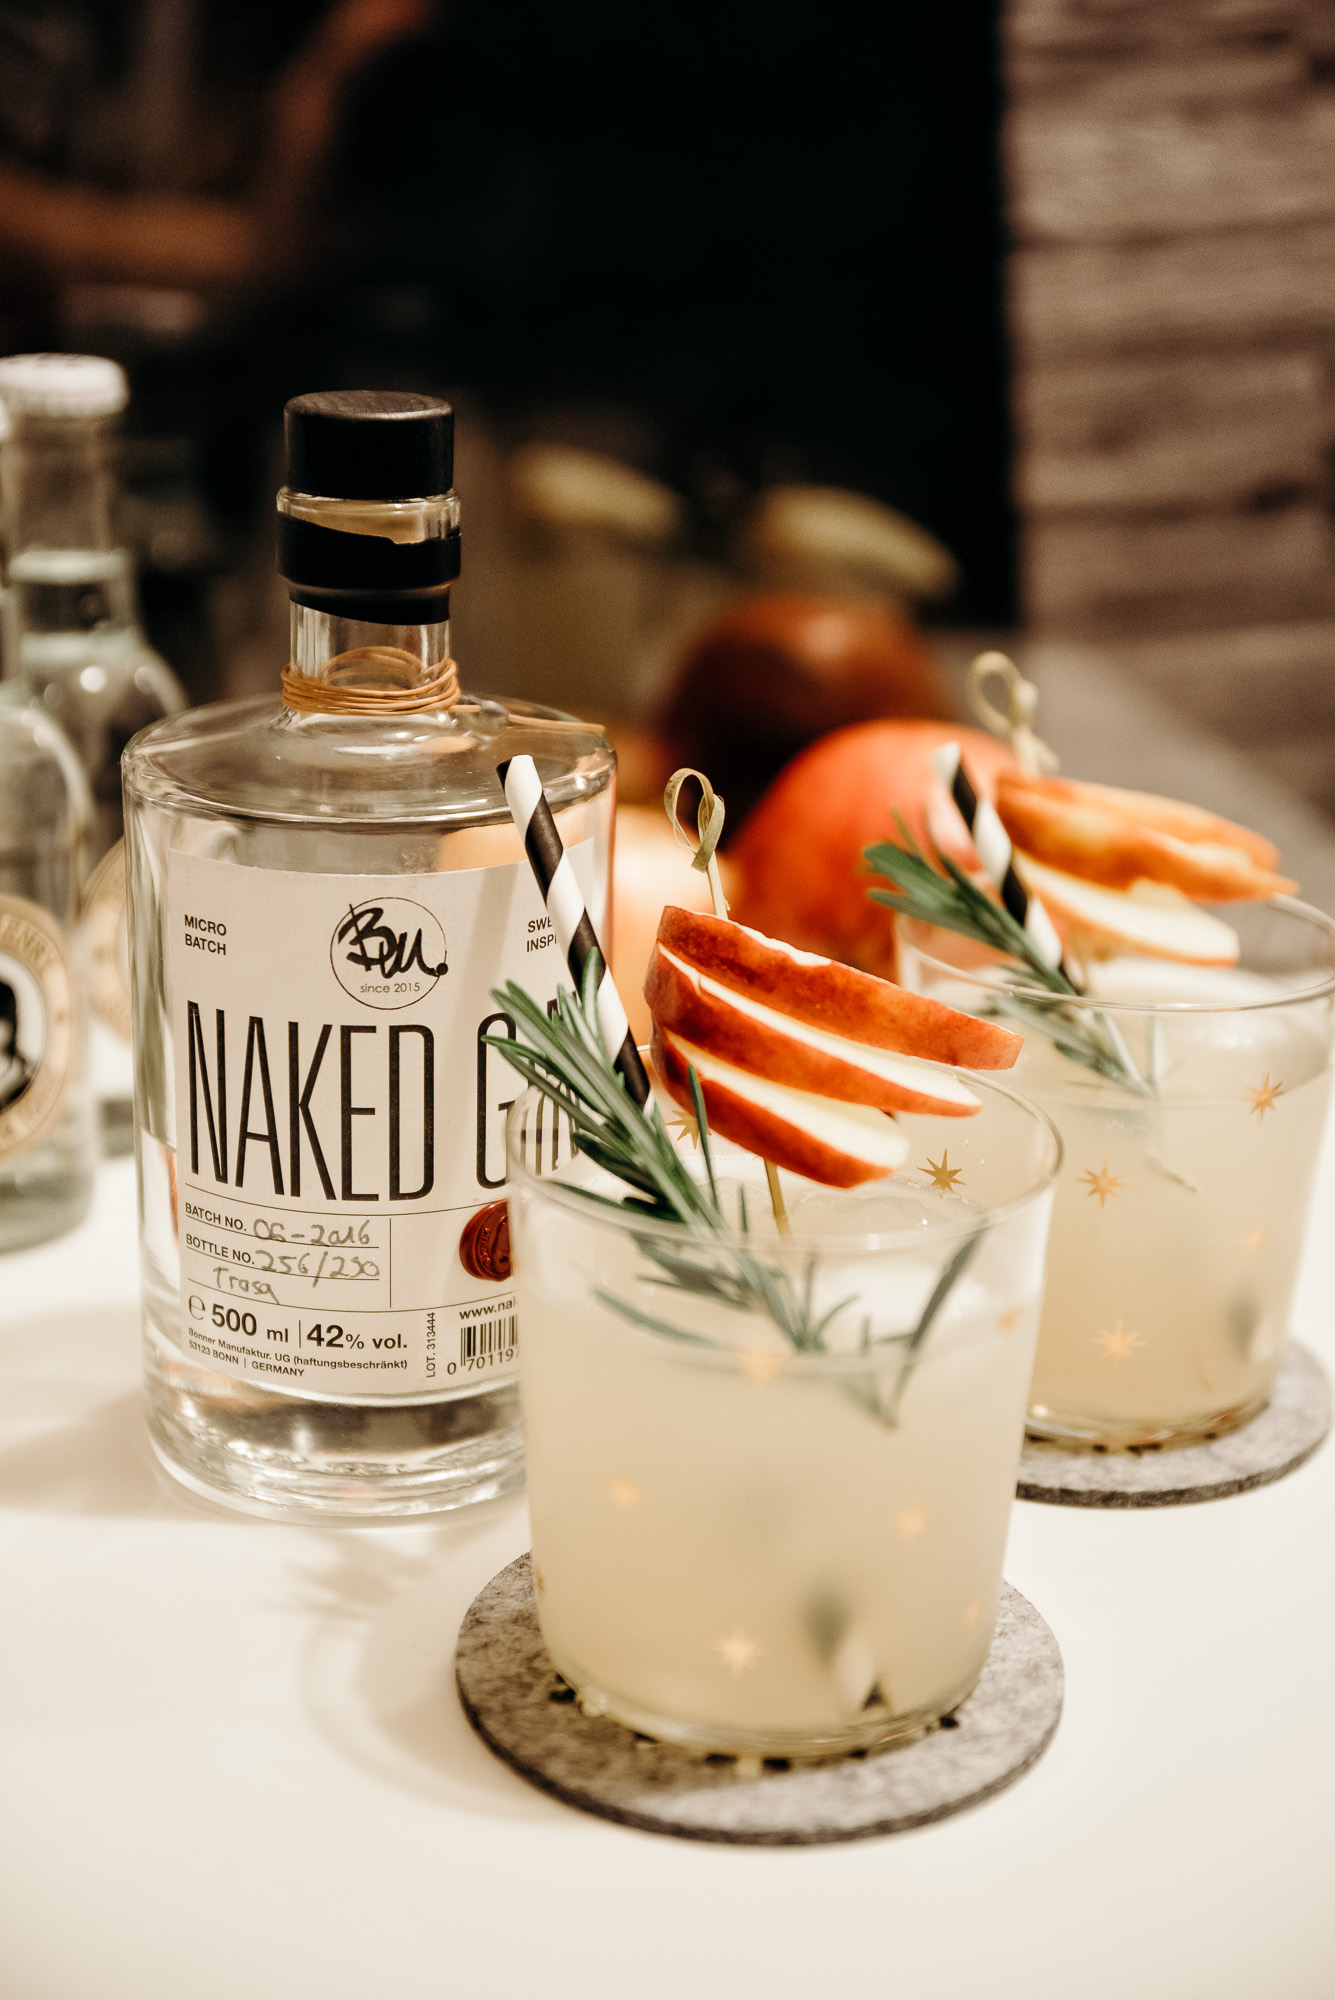 Naked Gin | Lisa Fiege